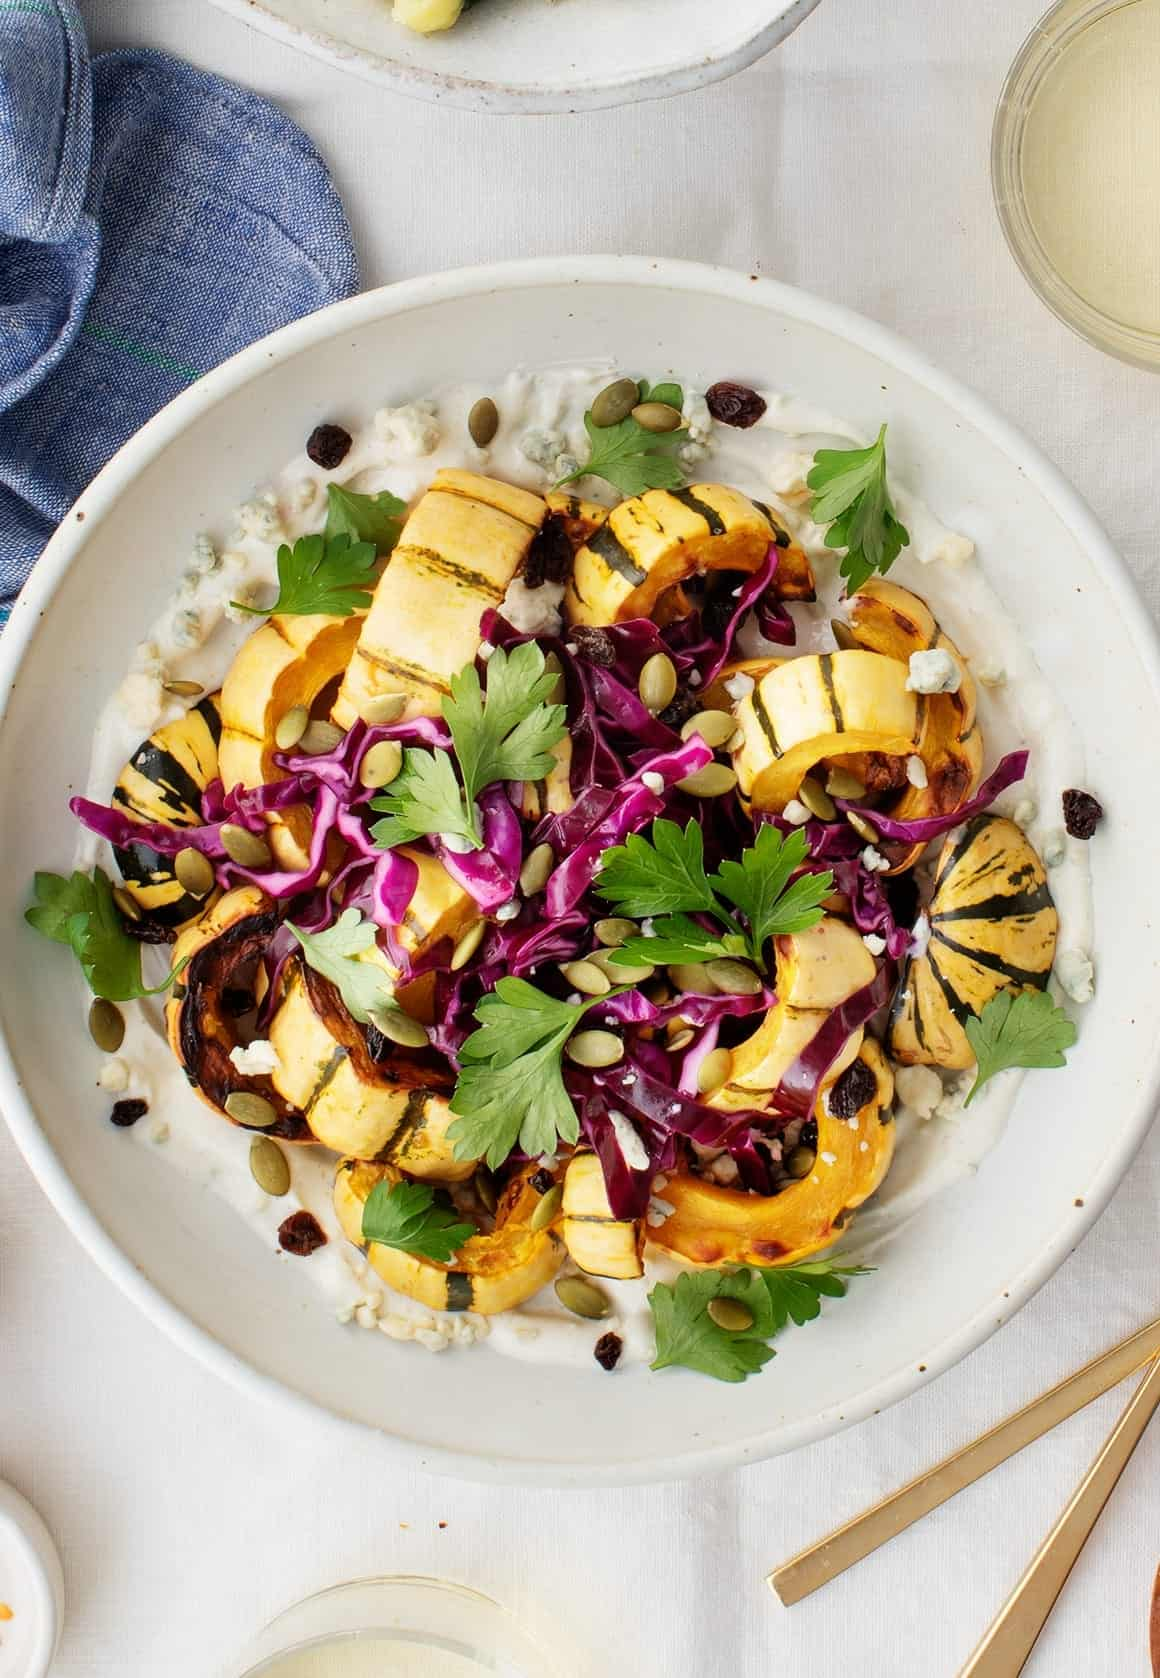 Roasted Delicata Squash & Creamy Blue Cheese Sauce with Tangy Red Cabbage